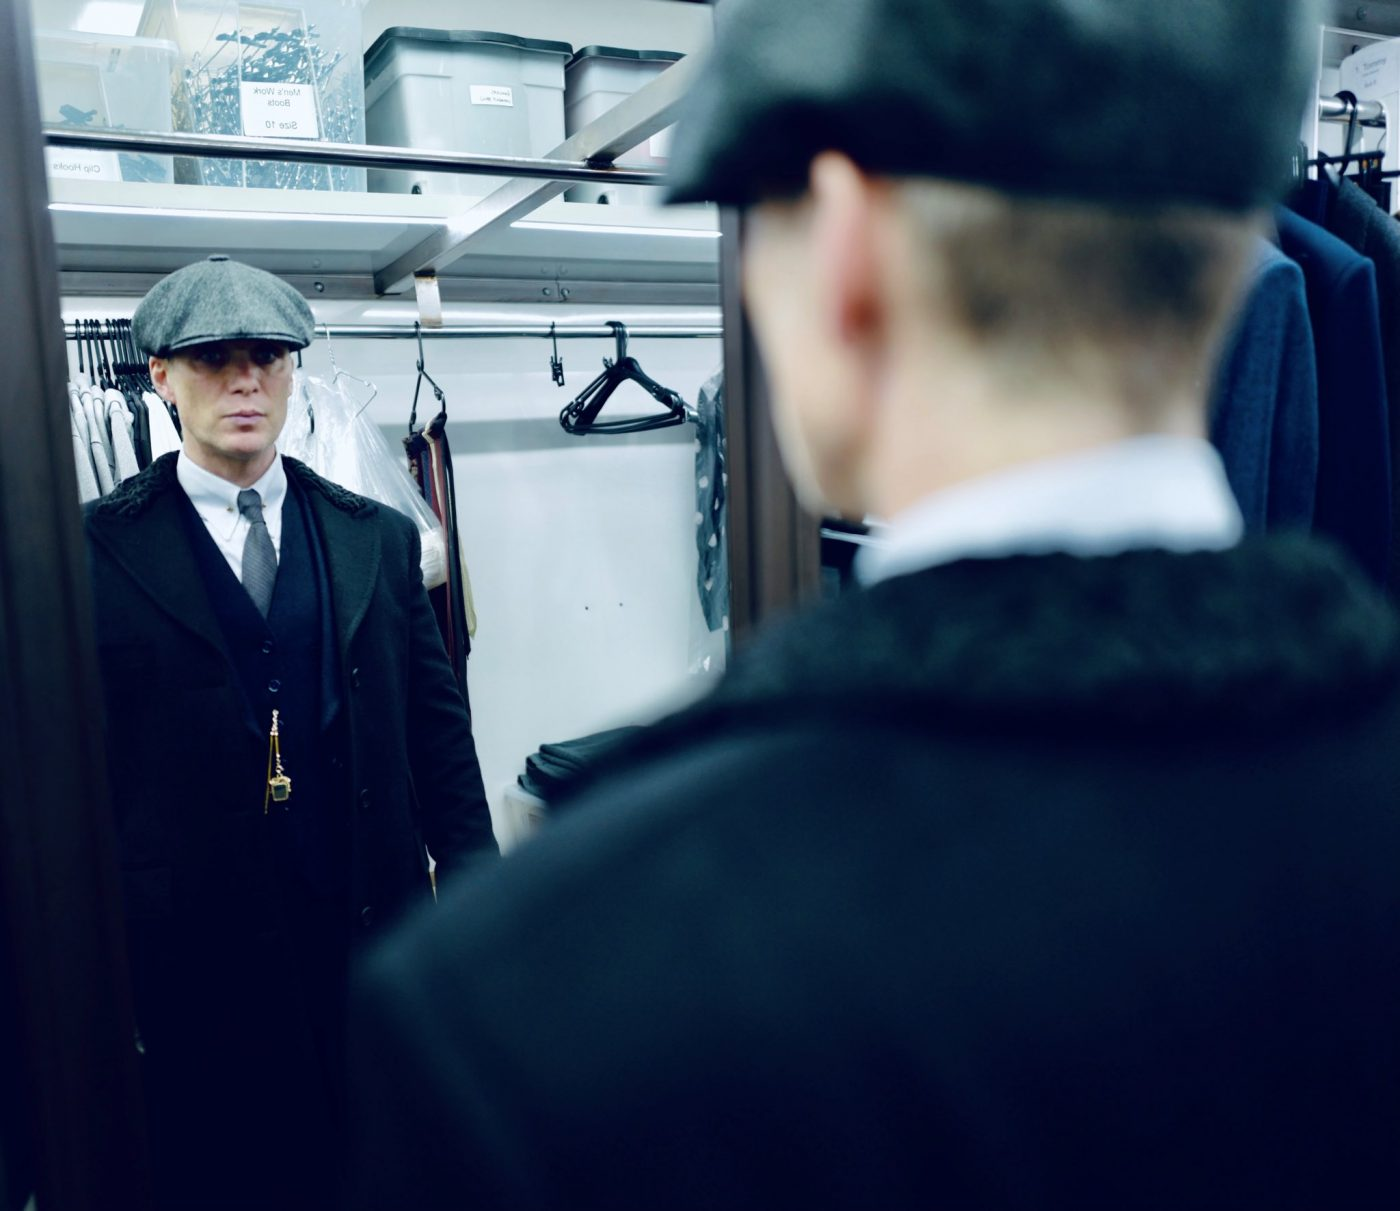 peaky blinders 6 backstage 1